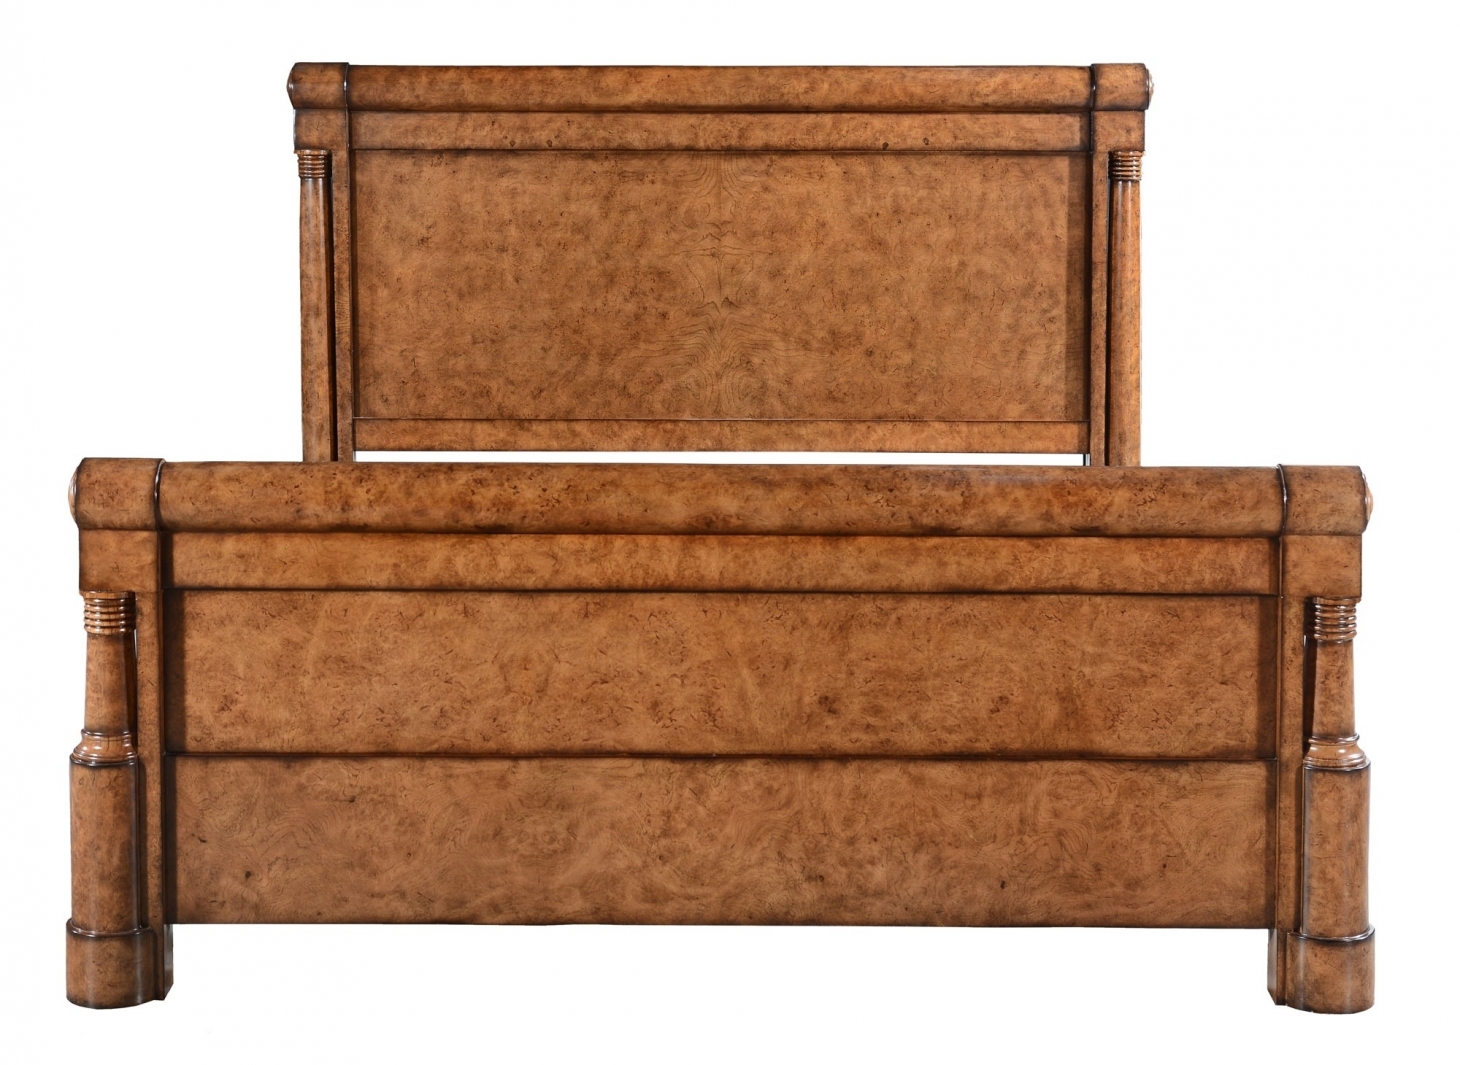 Empire style burr oak bedstead - King